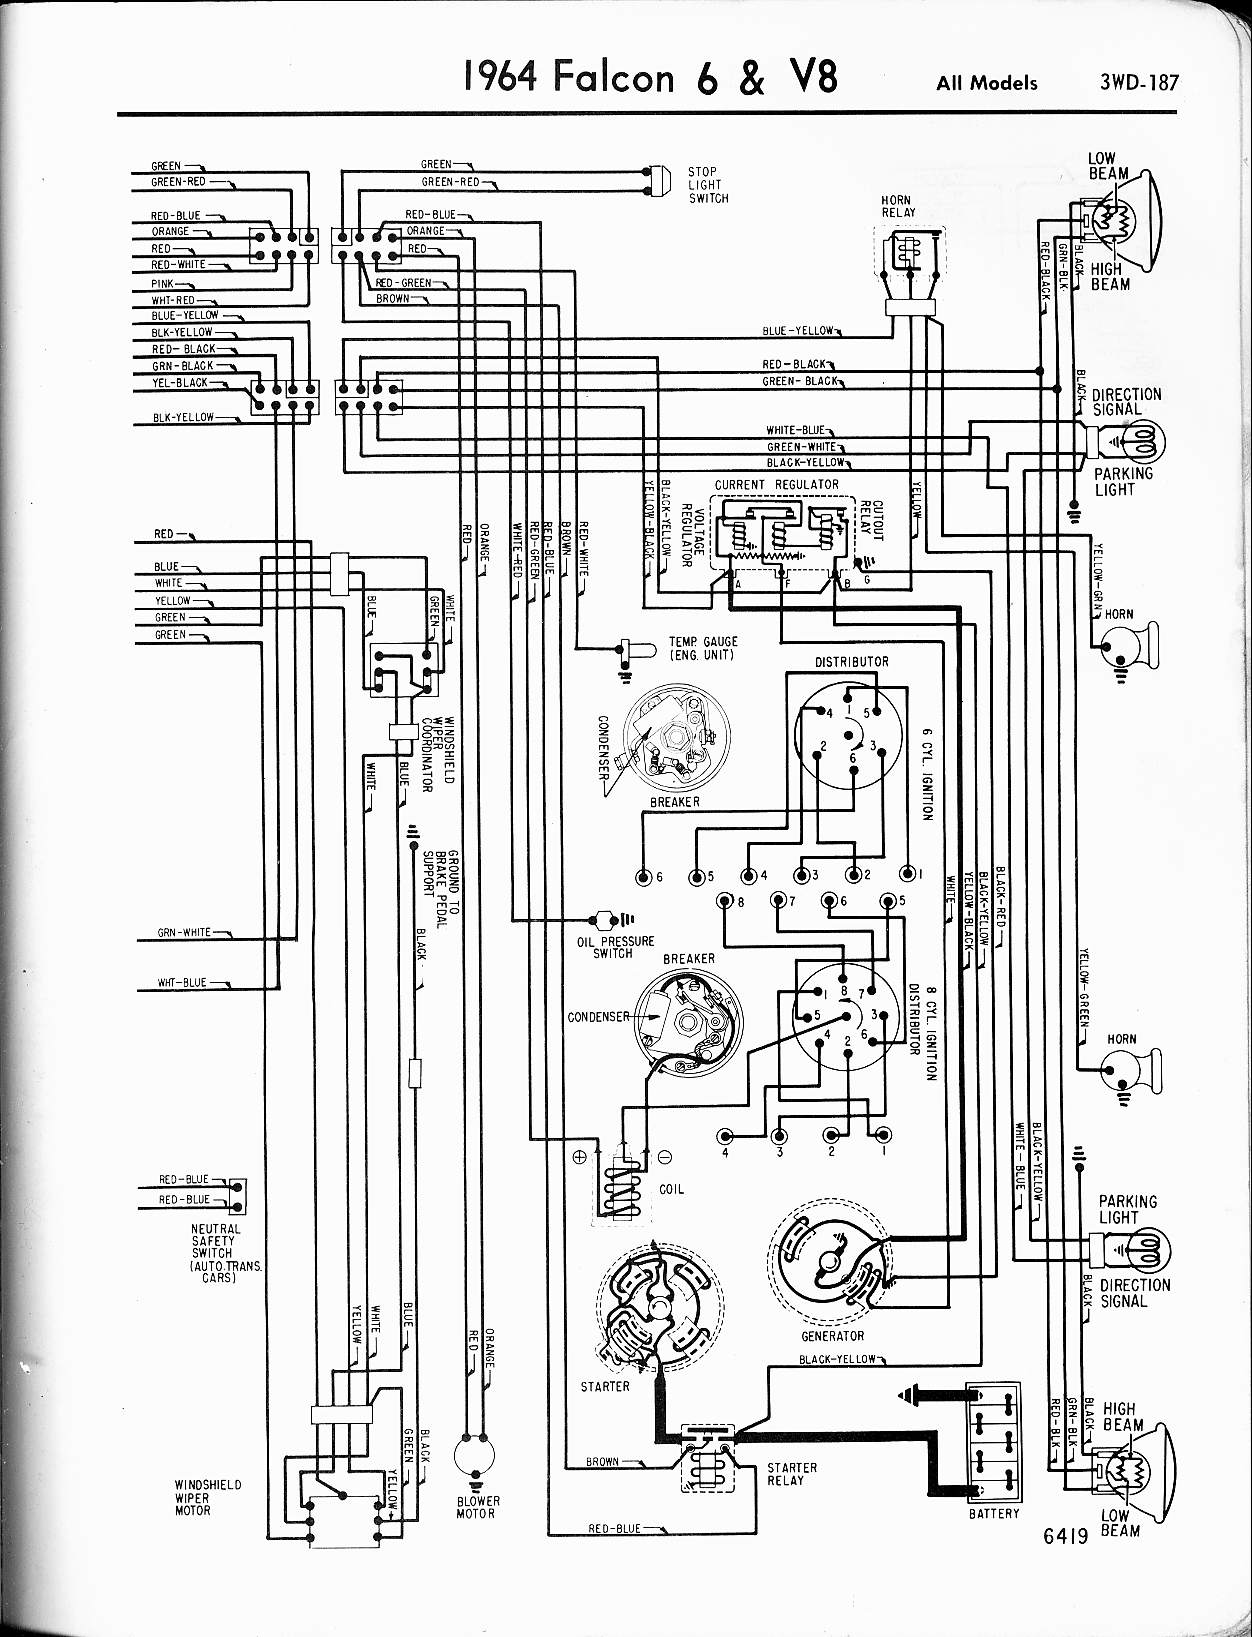 MWire5765 187 turn signal help needed 60 ranchero fordsix performance forum ba falcon wiring diagram at soozxer.org